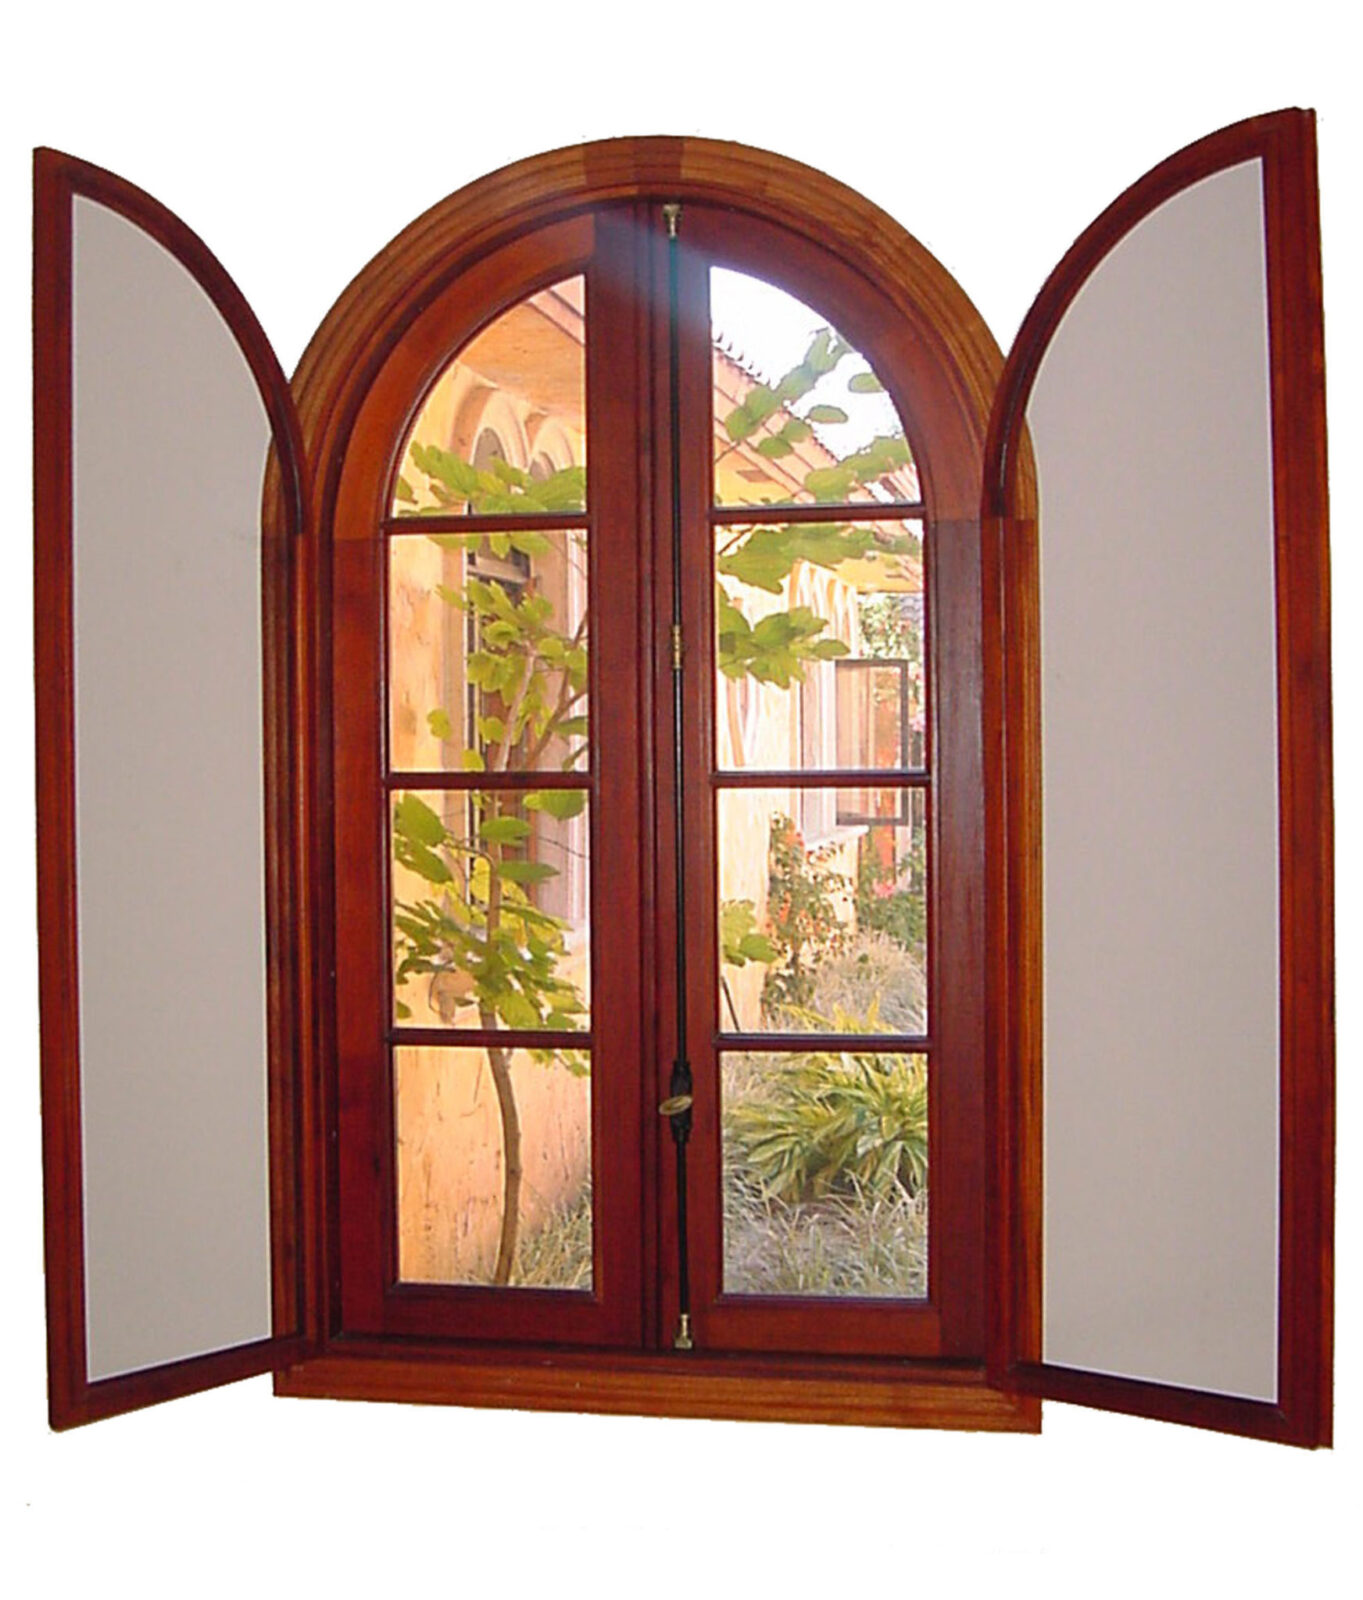 SANTA FE CASEMENT WINDOWS